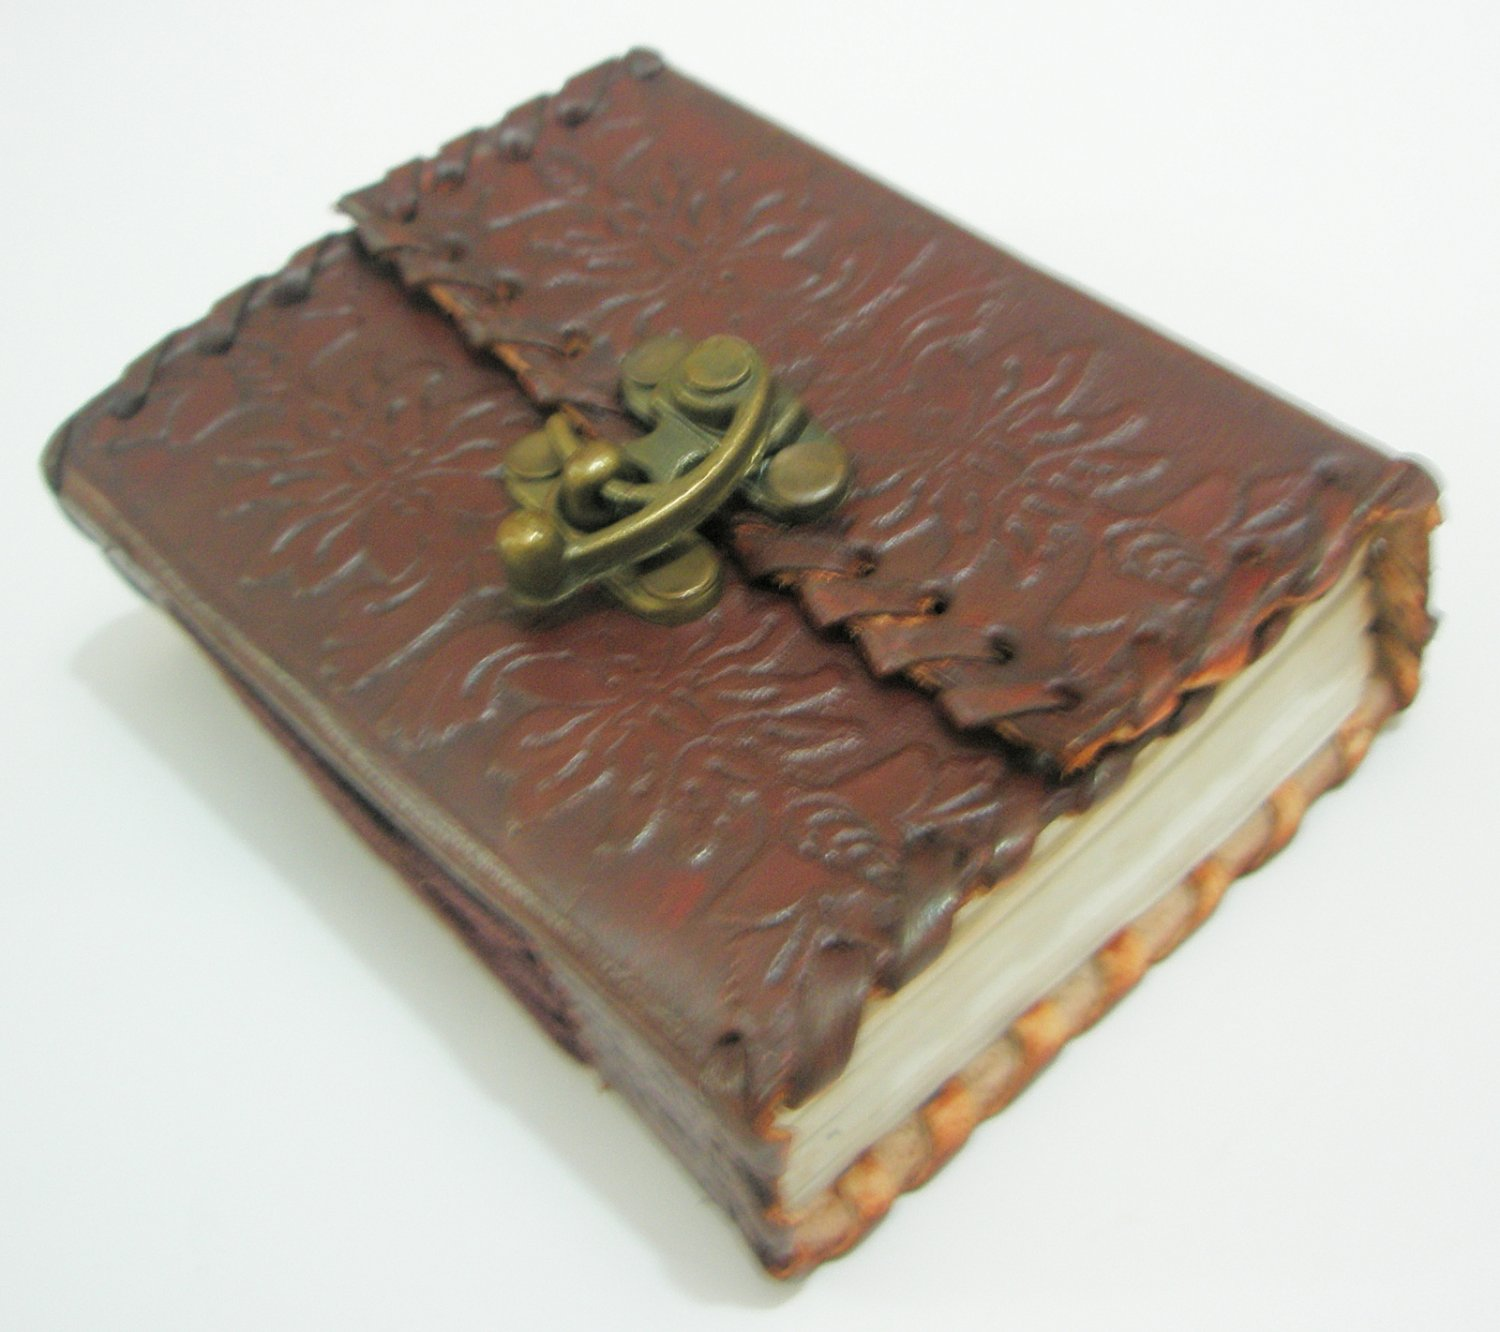 Handmade Leather Bound Mini Embossed Journal Pocket Diary Blank Writing Notebook with Lock